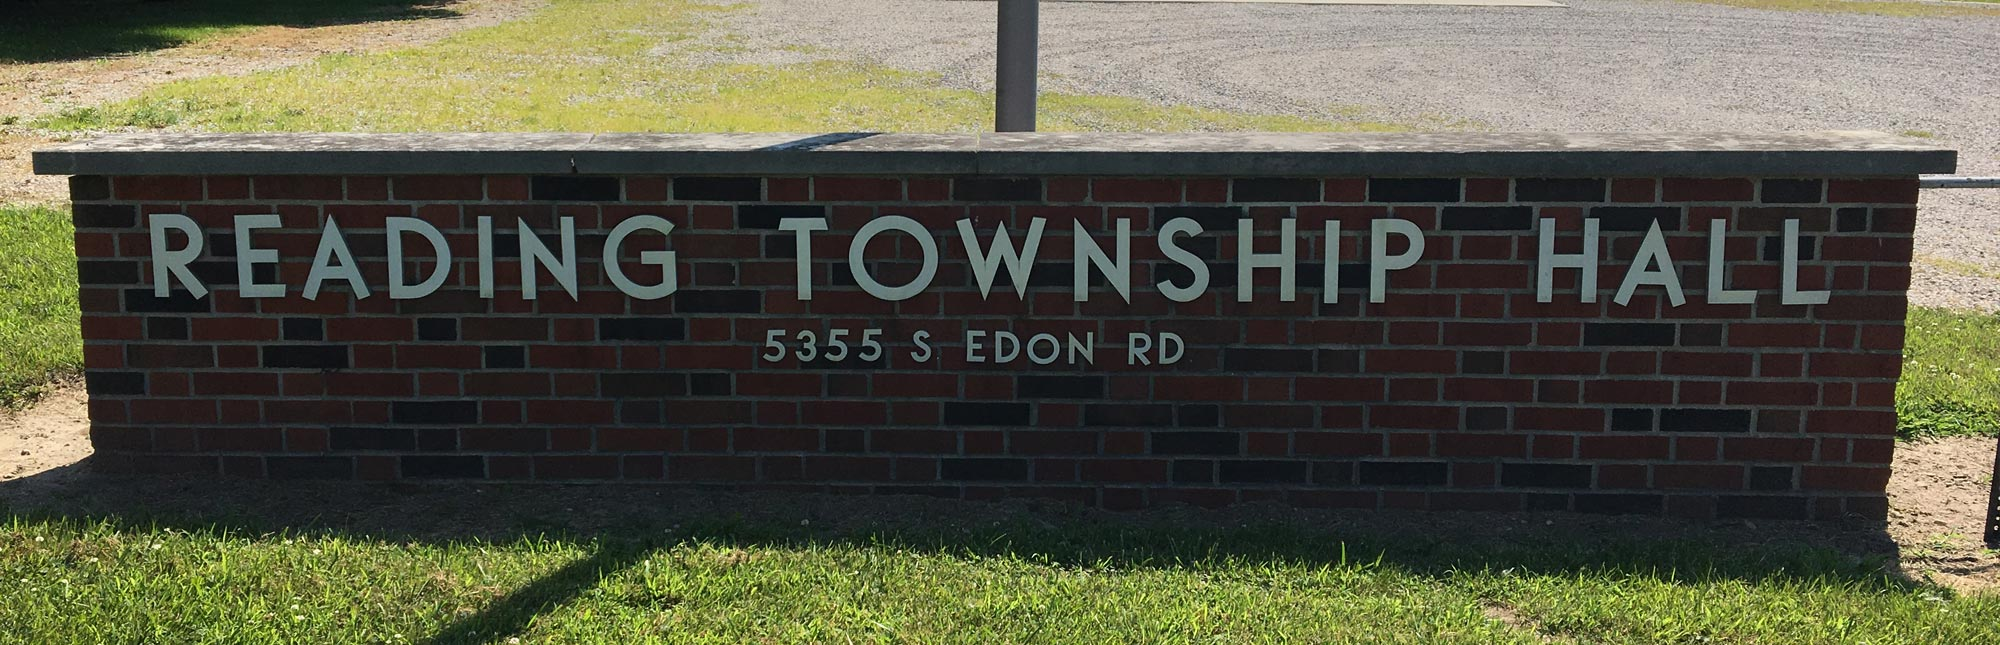 Reading Township